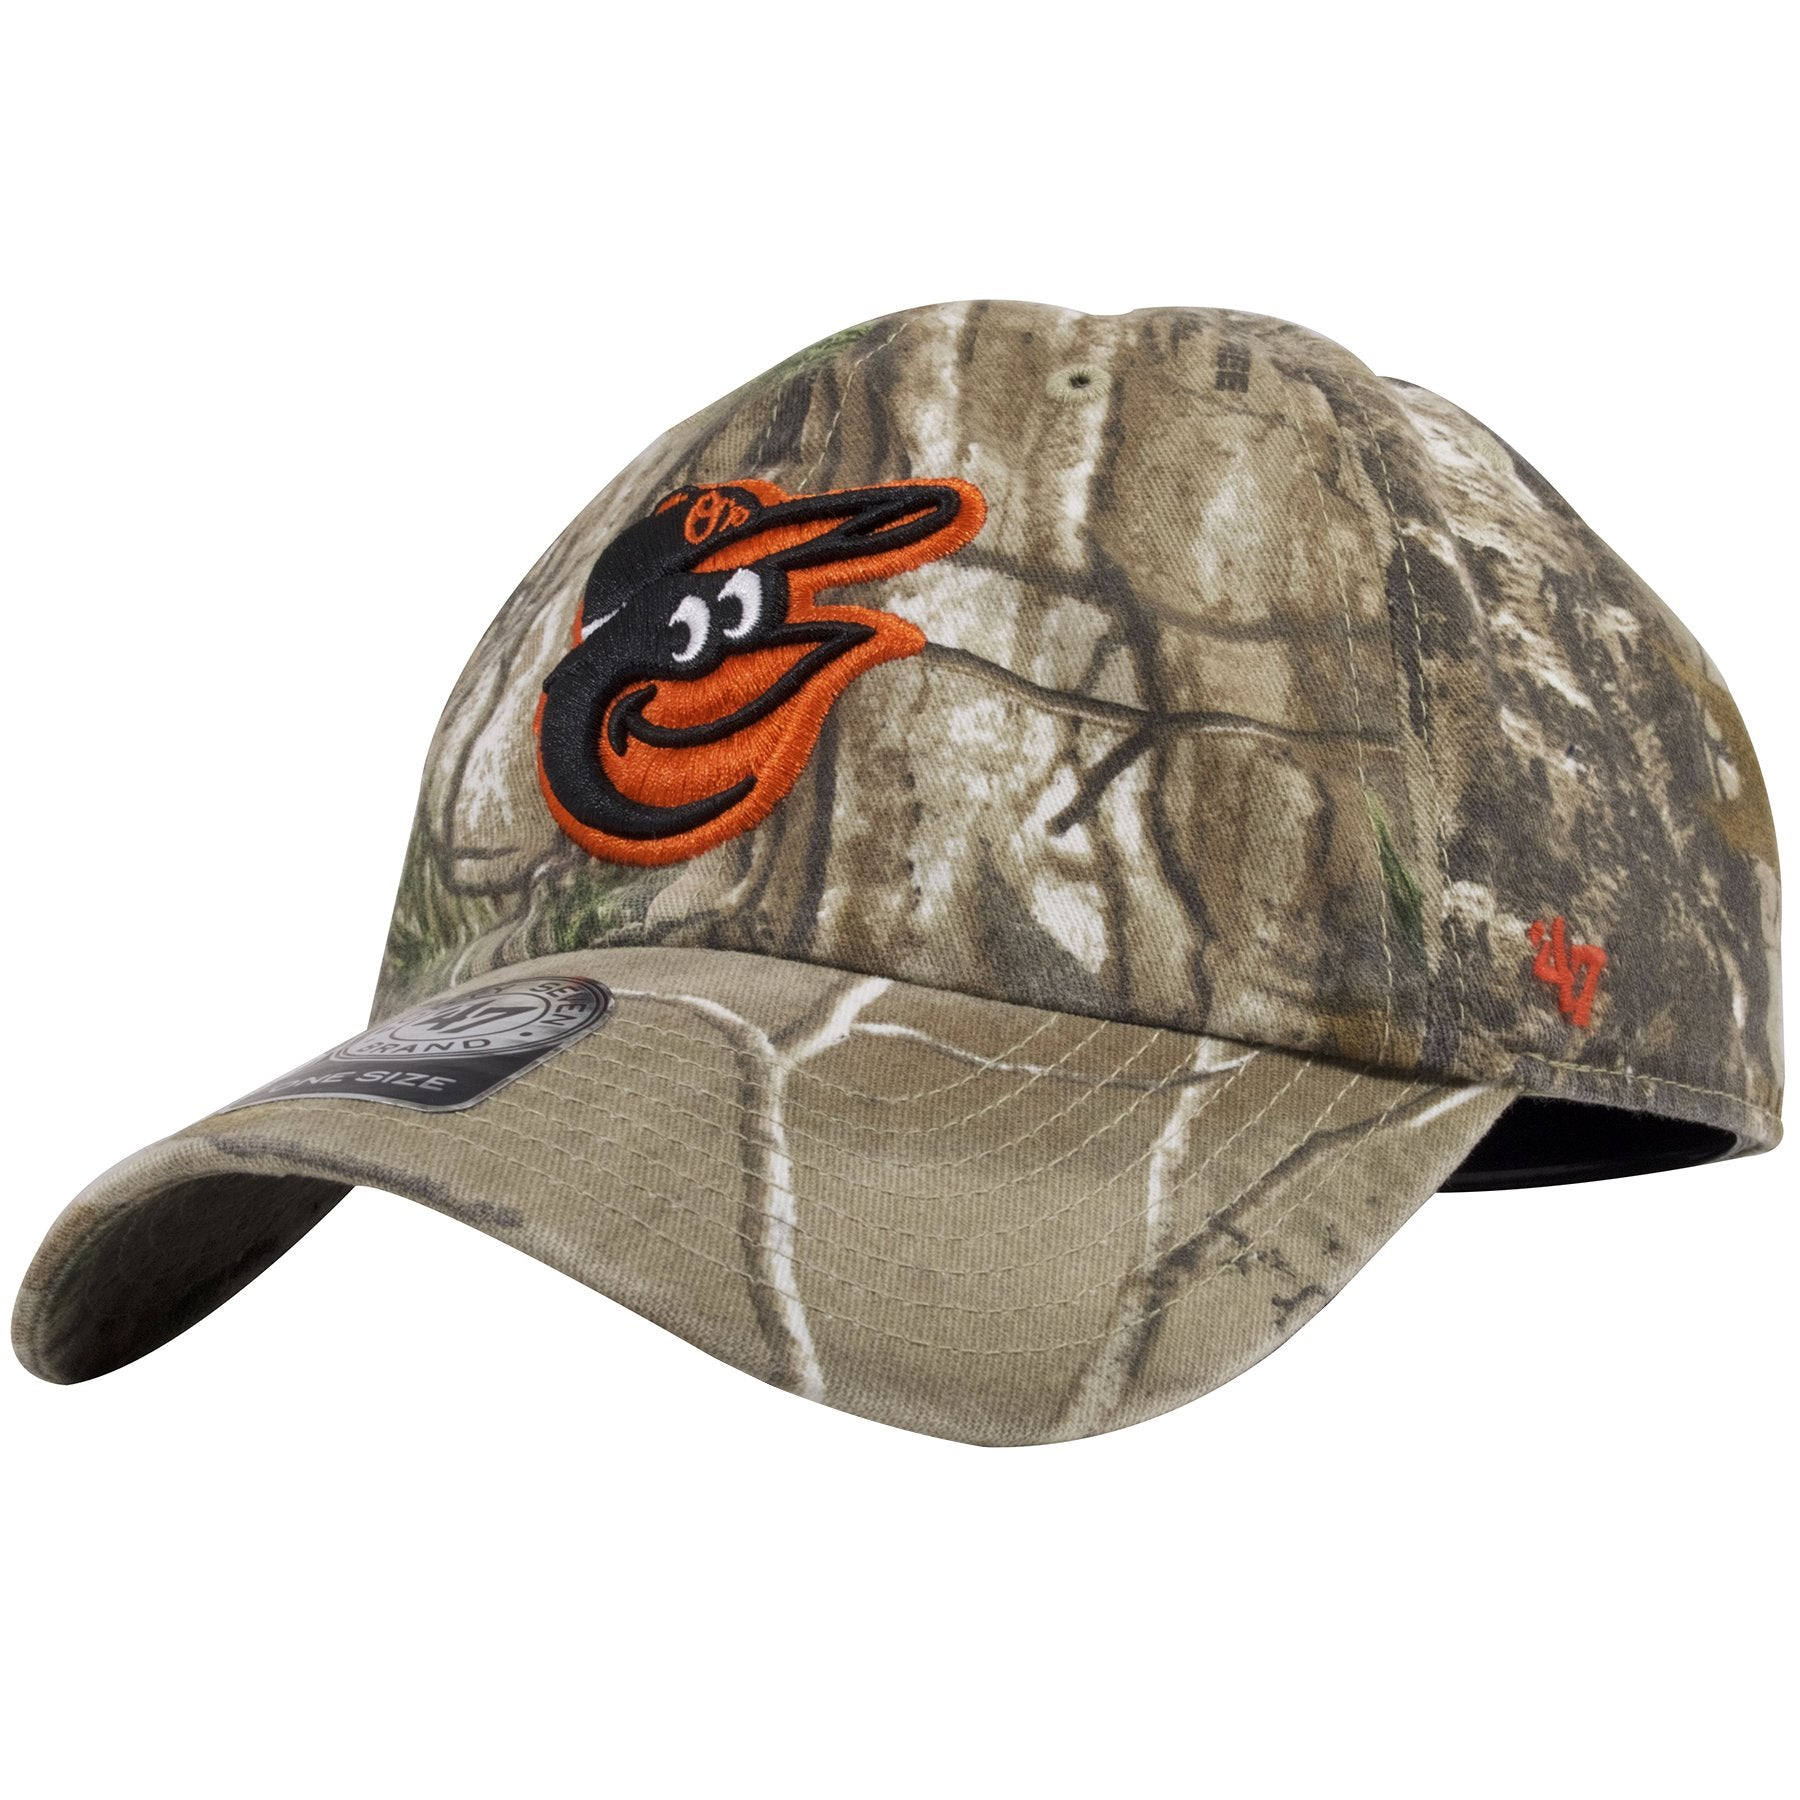 ... The left side of this Realtree Camo Baltimore Orioles dad hat is an  orange 47 brand ... 86473953a55